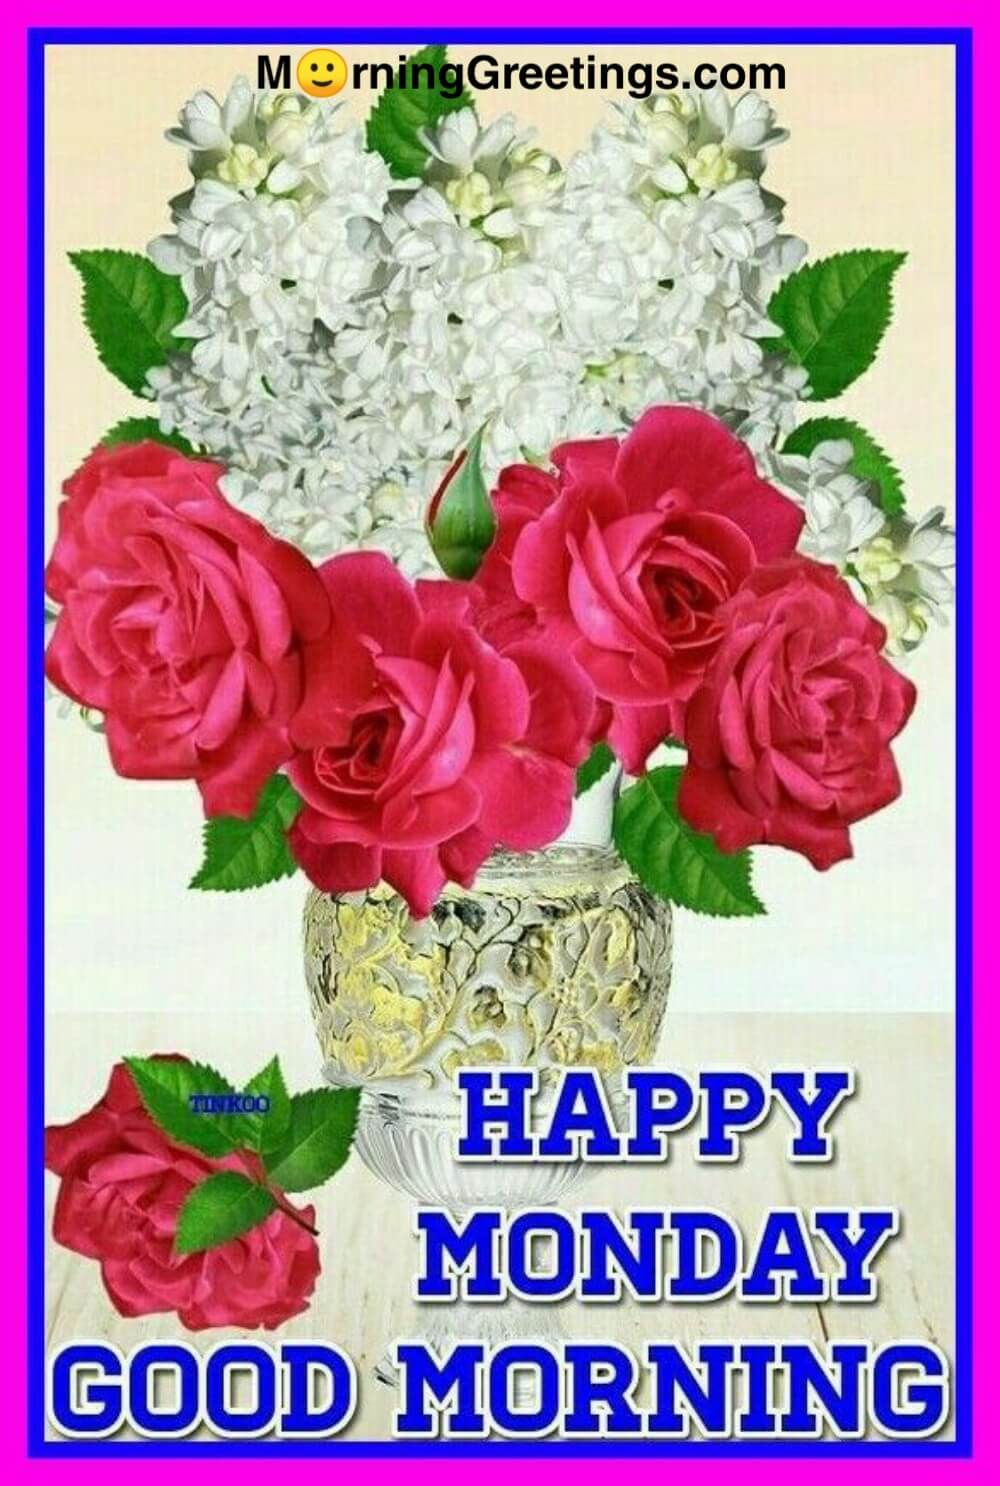 40 Good Morning Happy Monday Images Morning Greetings Morning Wishes